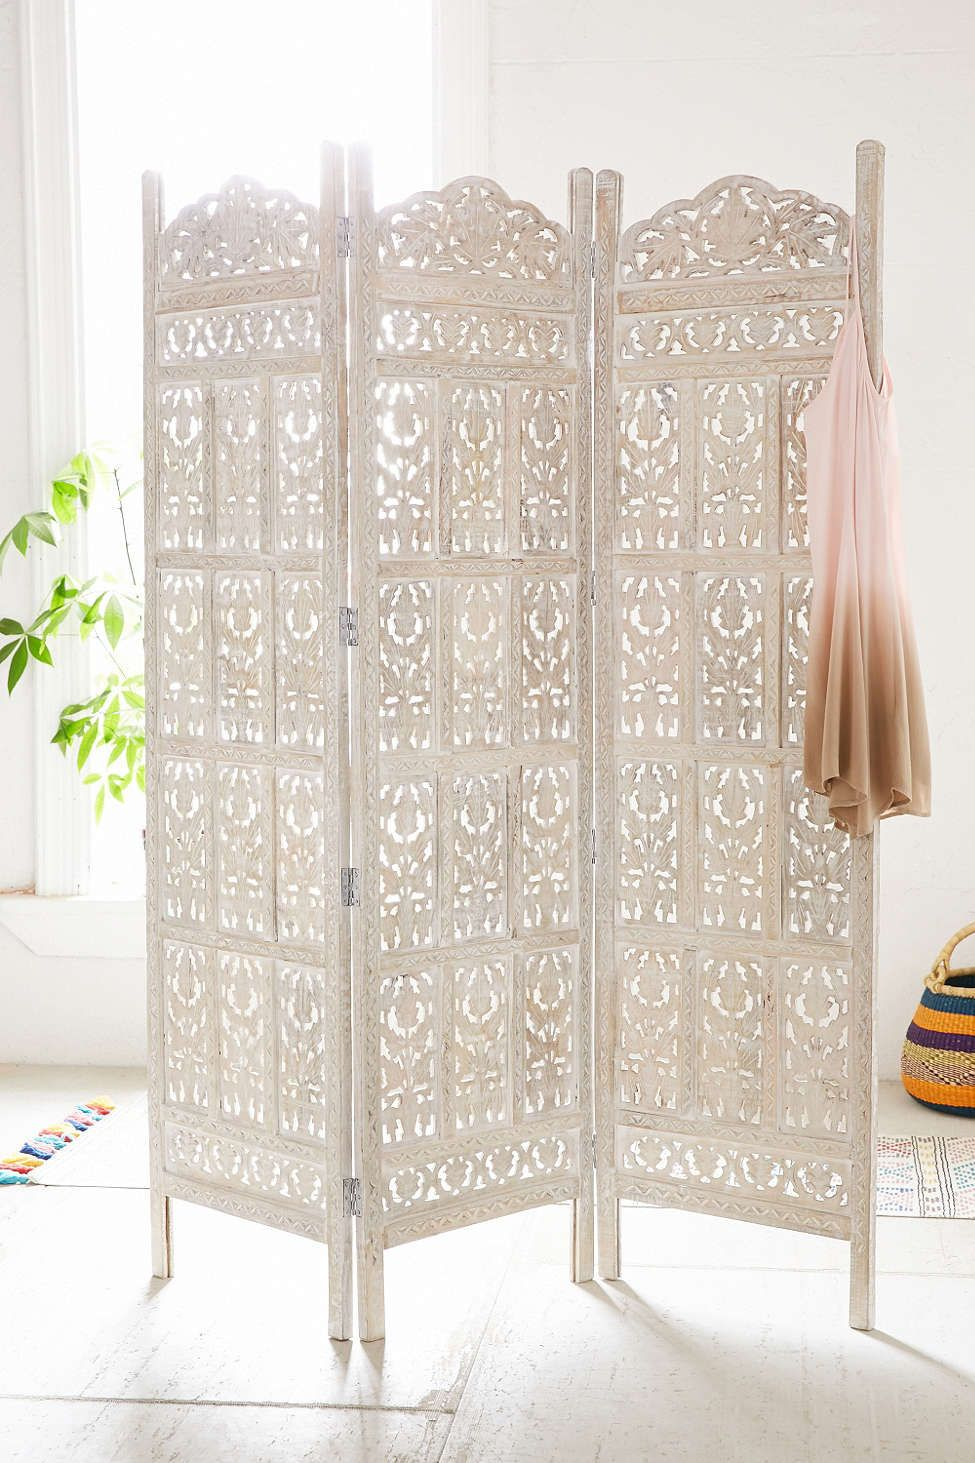 Amber Wooden Carved Screen   Urban OutfittersAmber Wooden Carved Screen   Amber  Urban outfitters and Screens. Reasonably Priced Bedroom Furniture. Home Design Ideas